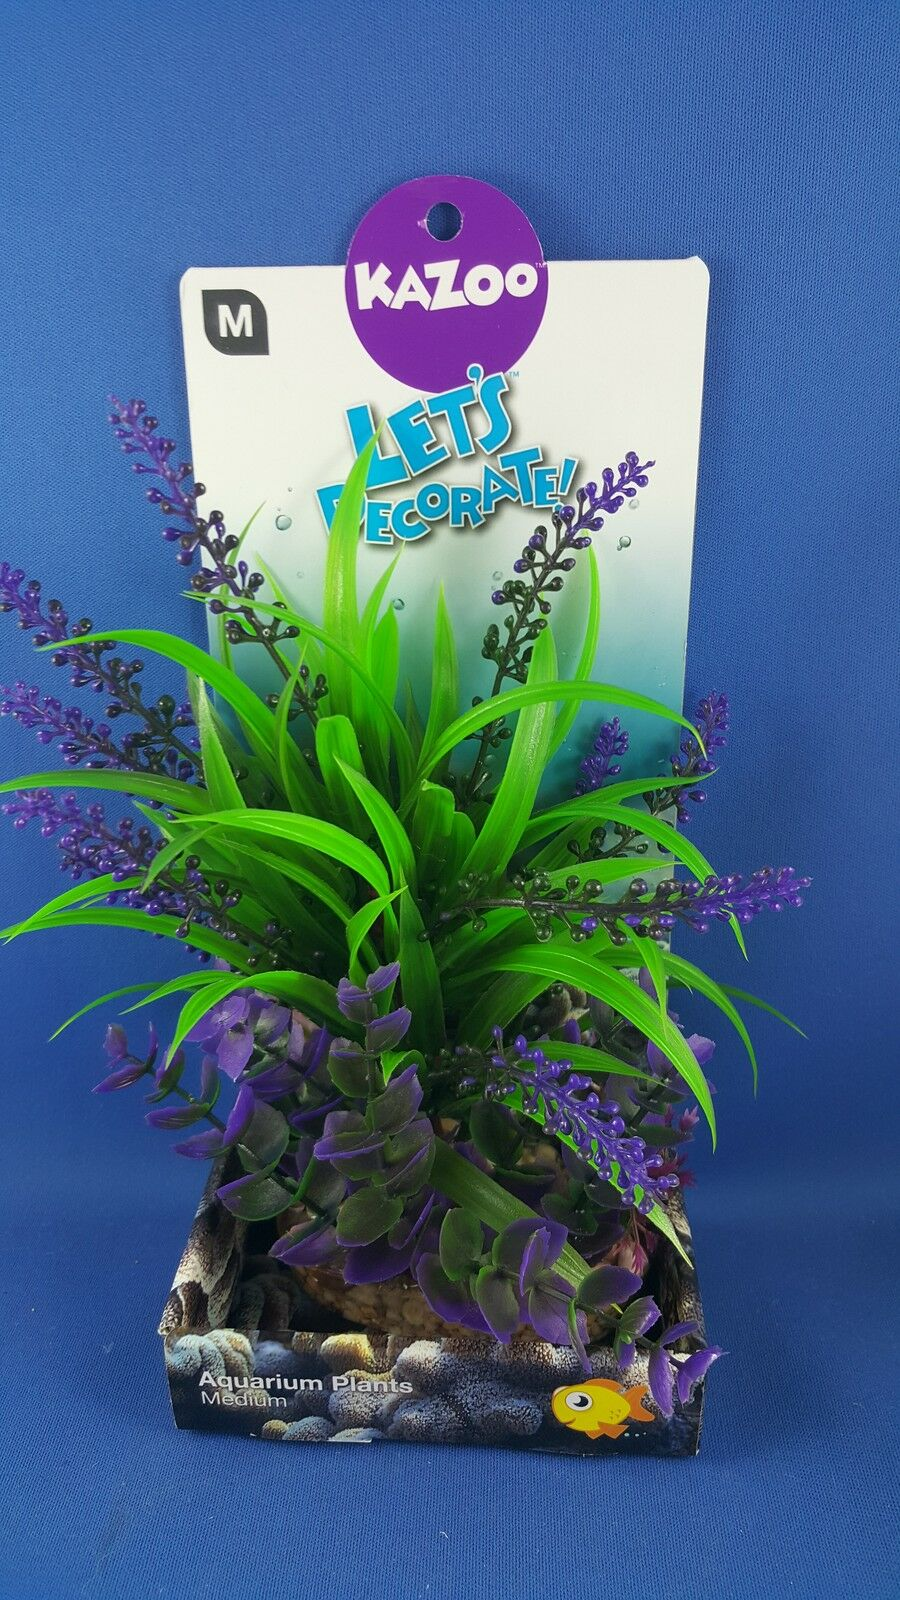 Kazoo aquarium plant, medium size, green & purple leaves with solid pebble base